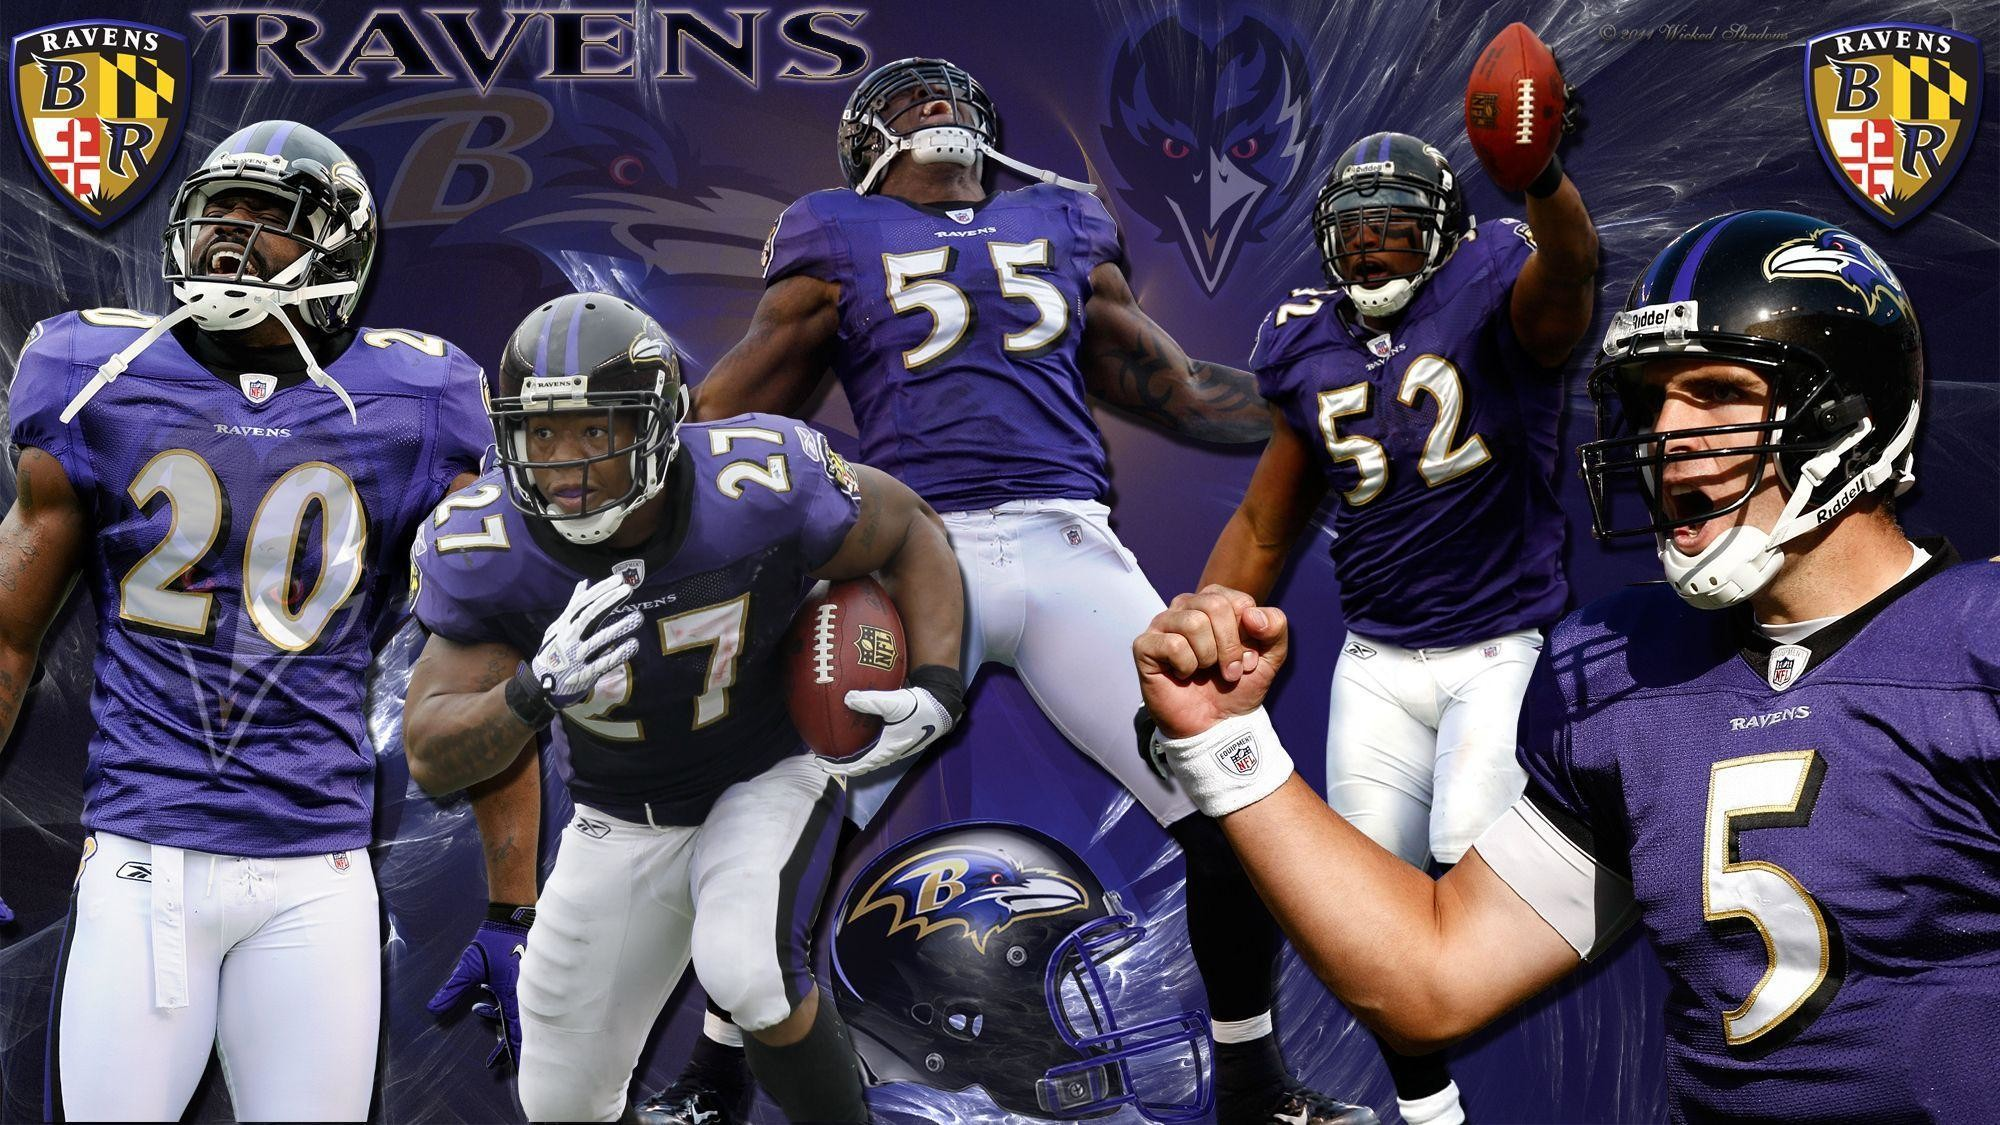 Lion Live Wallpaper Iphone X Ravens And Orioles Wallpaper 64 Images